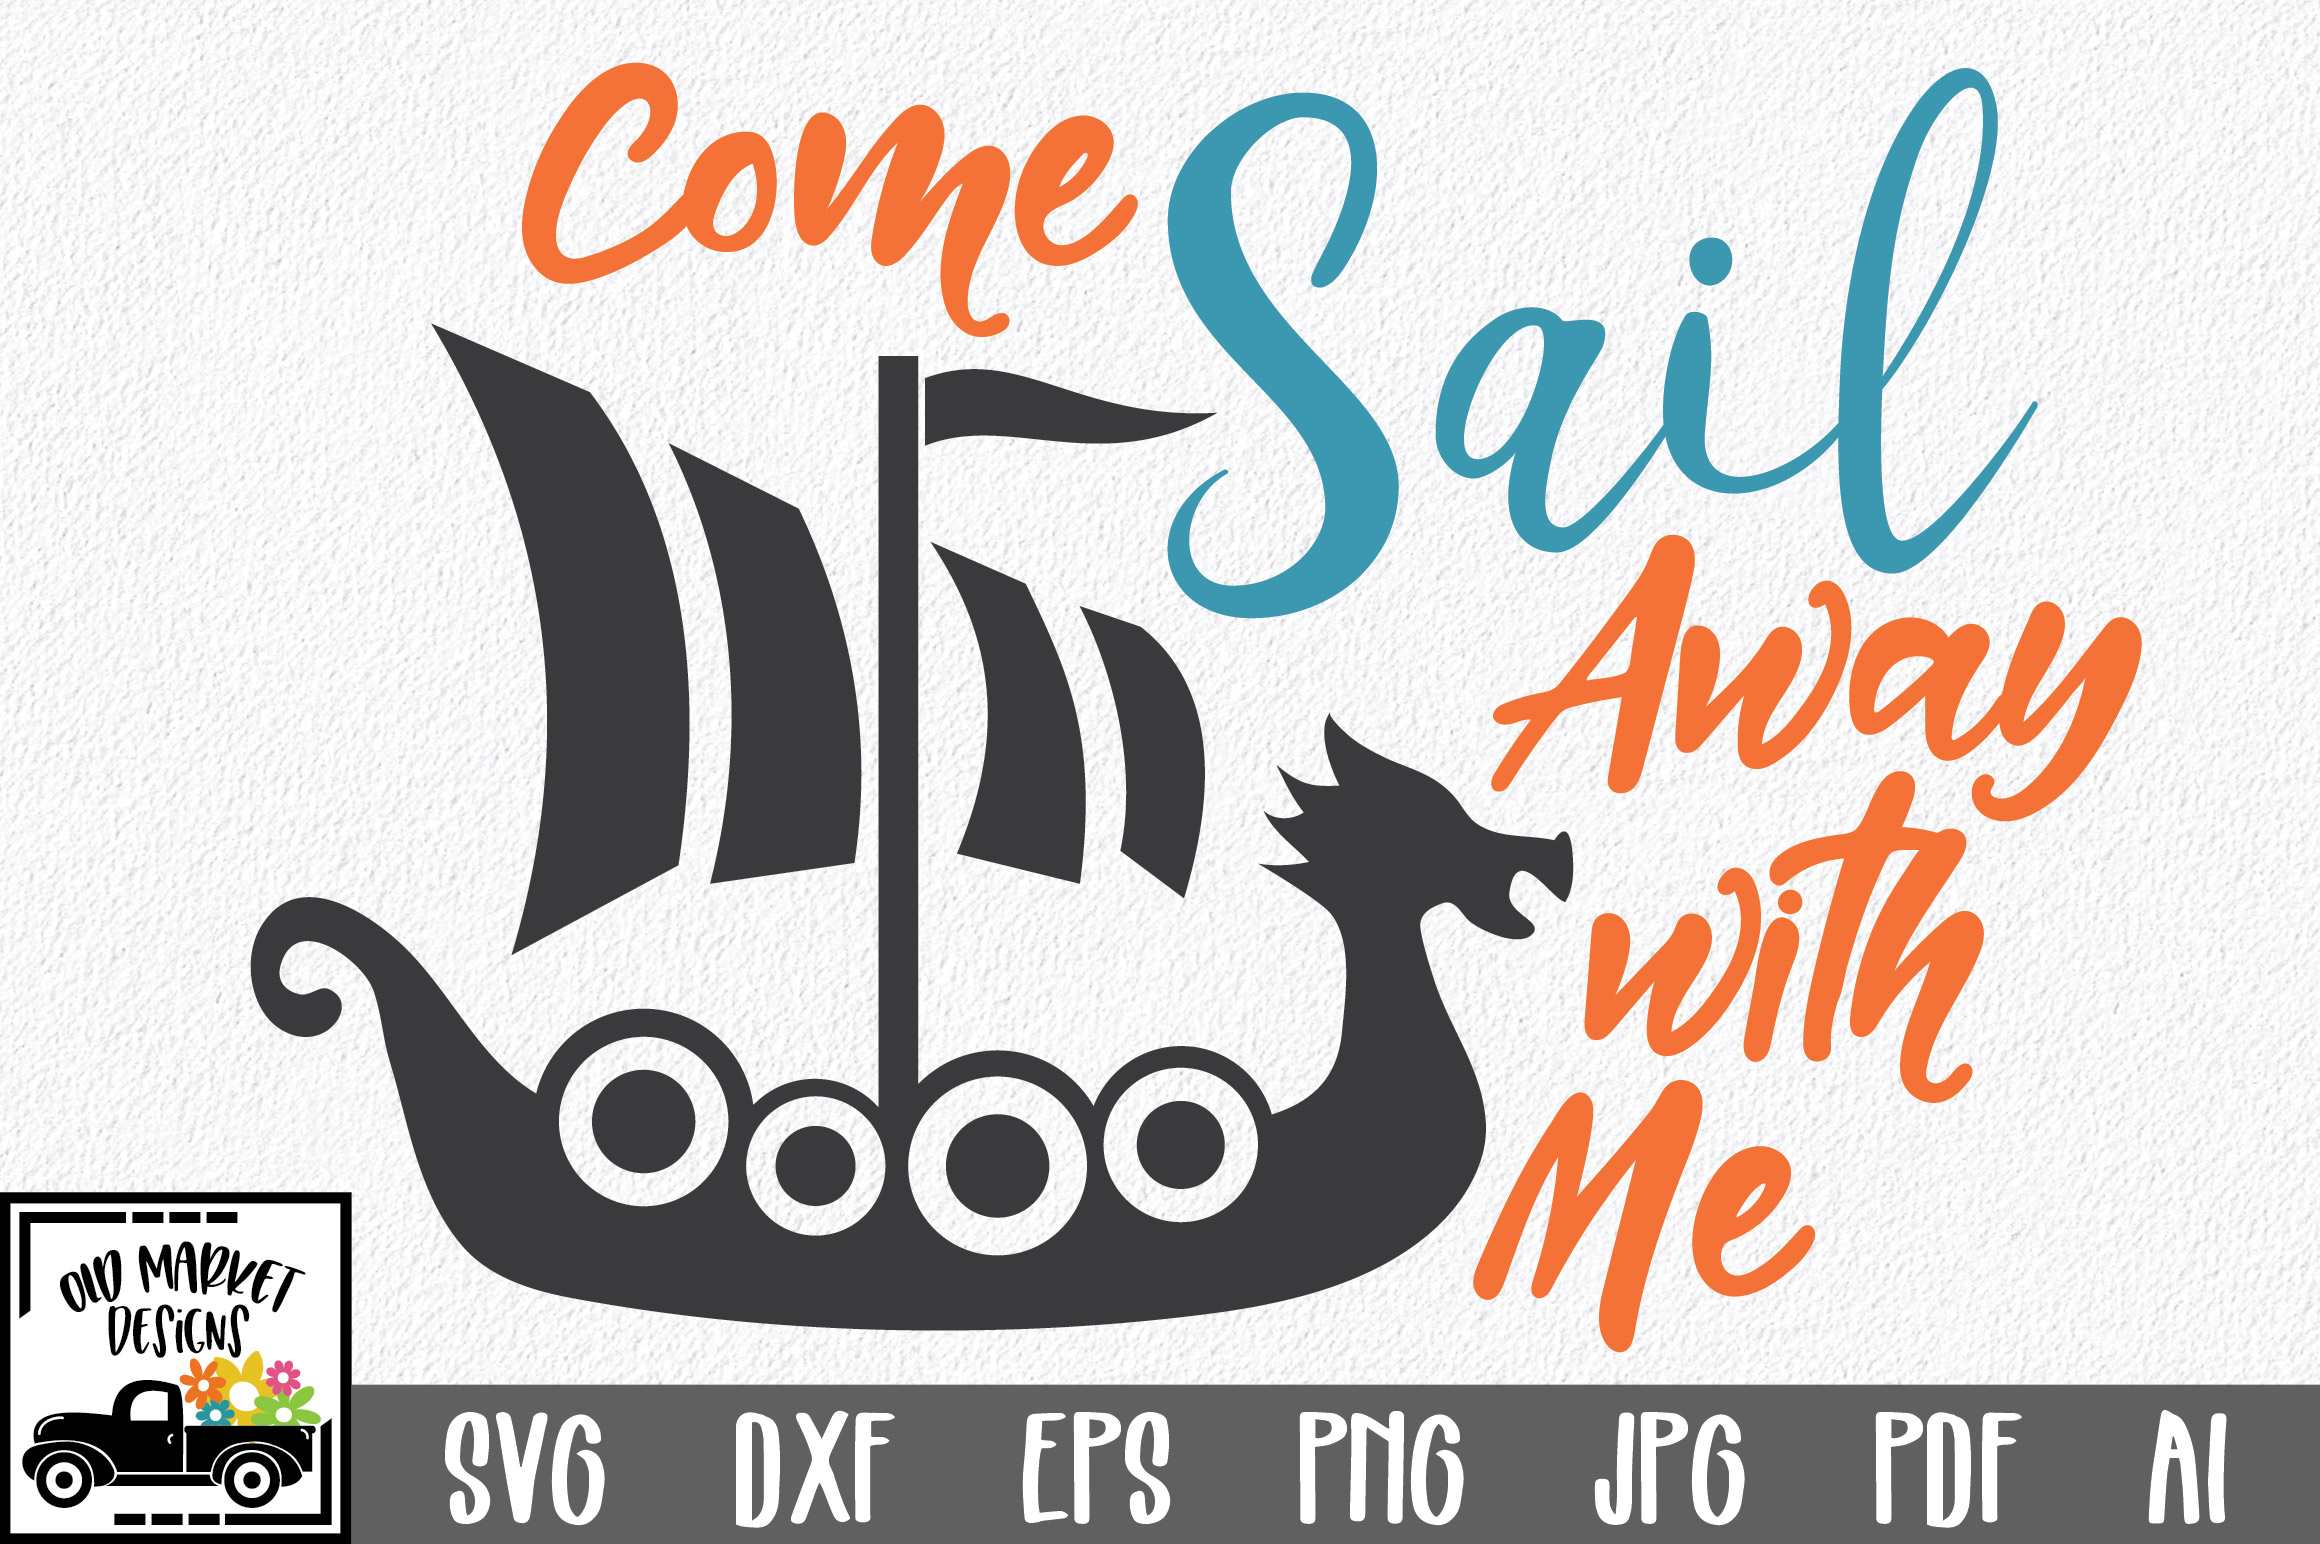 Download Free Come Sail Away With Me Svg Graphic By Oldmarketdesigns for Cricut Explore, Silhouette and other cutting machines.